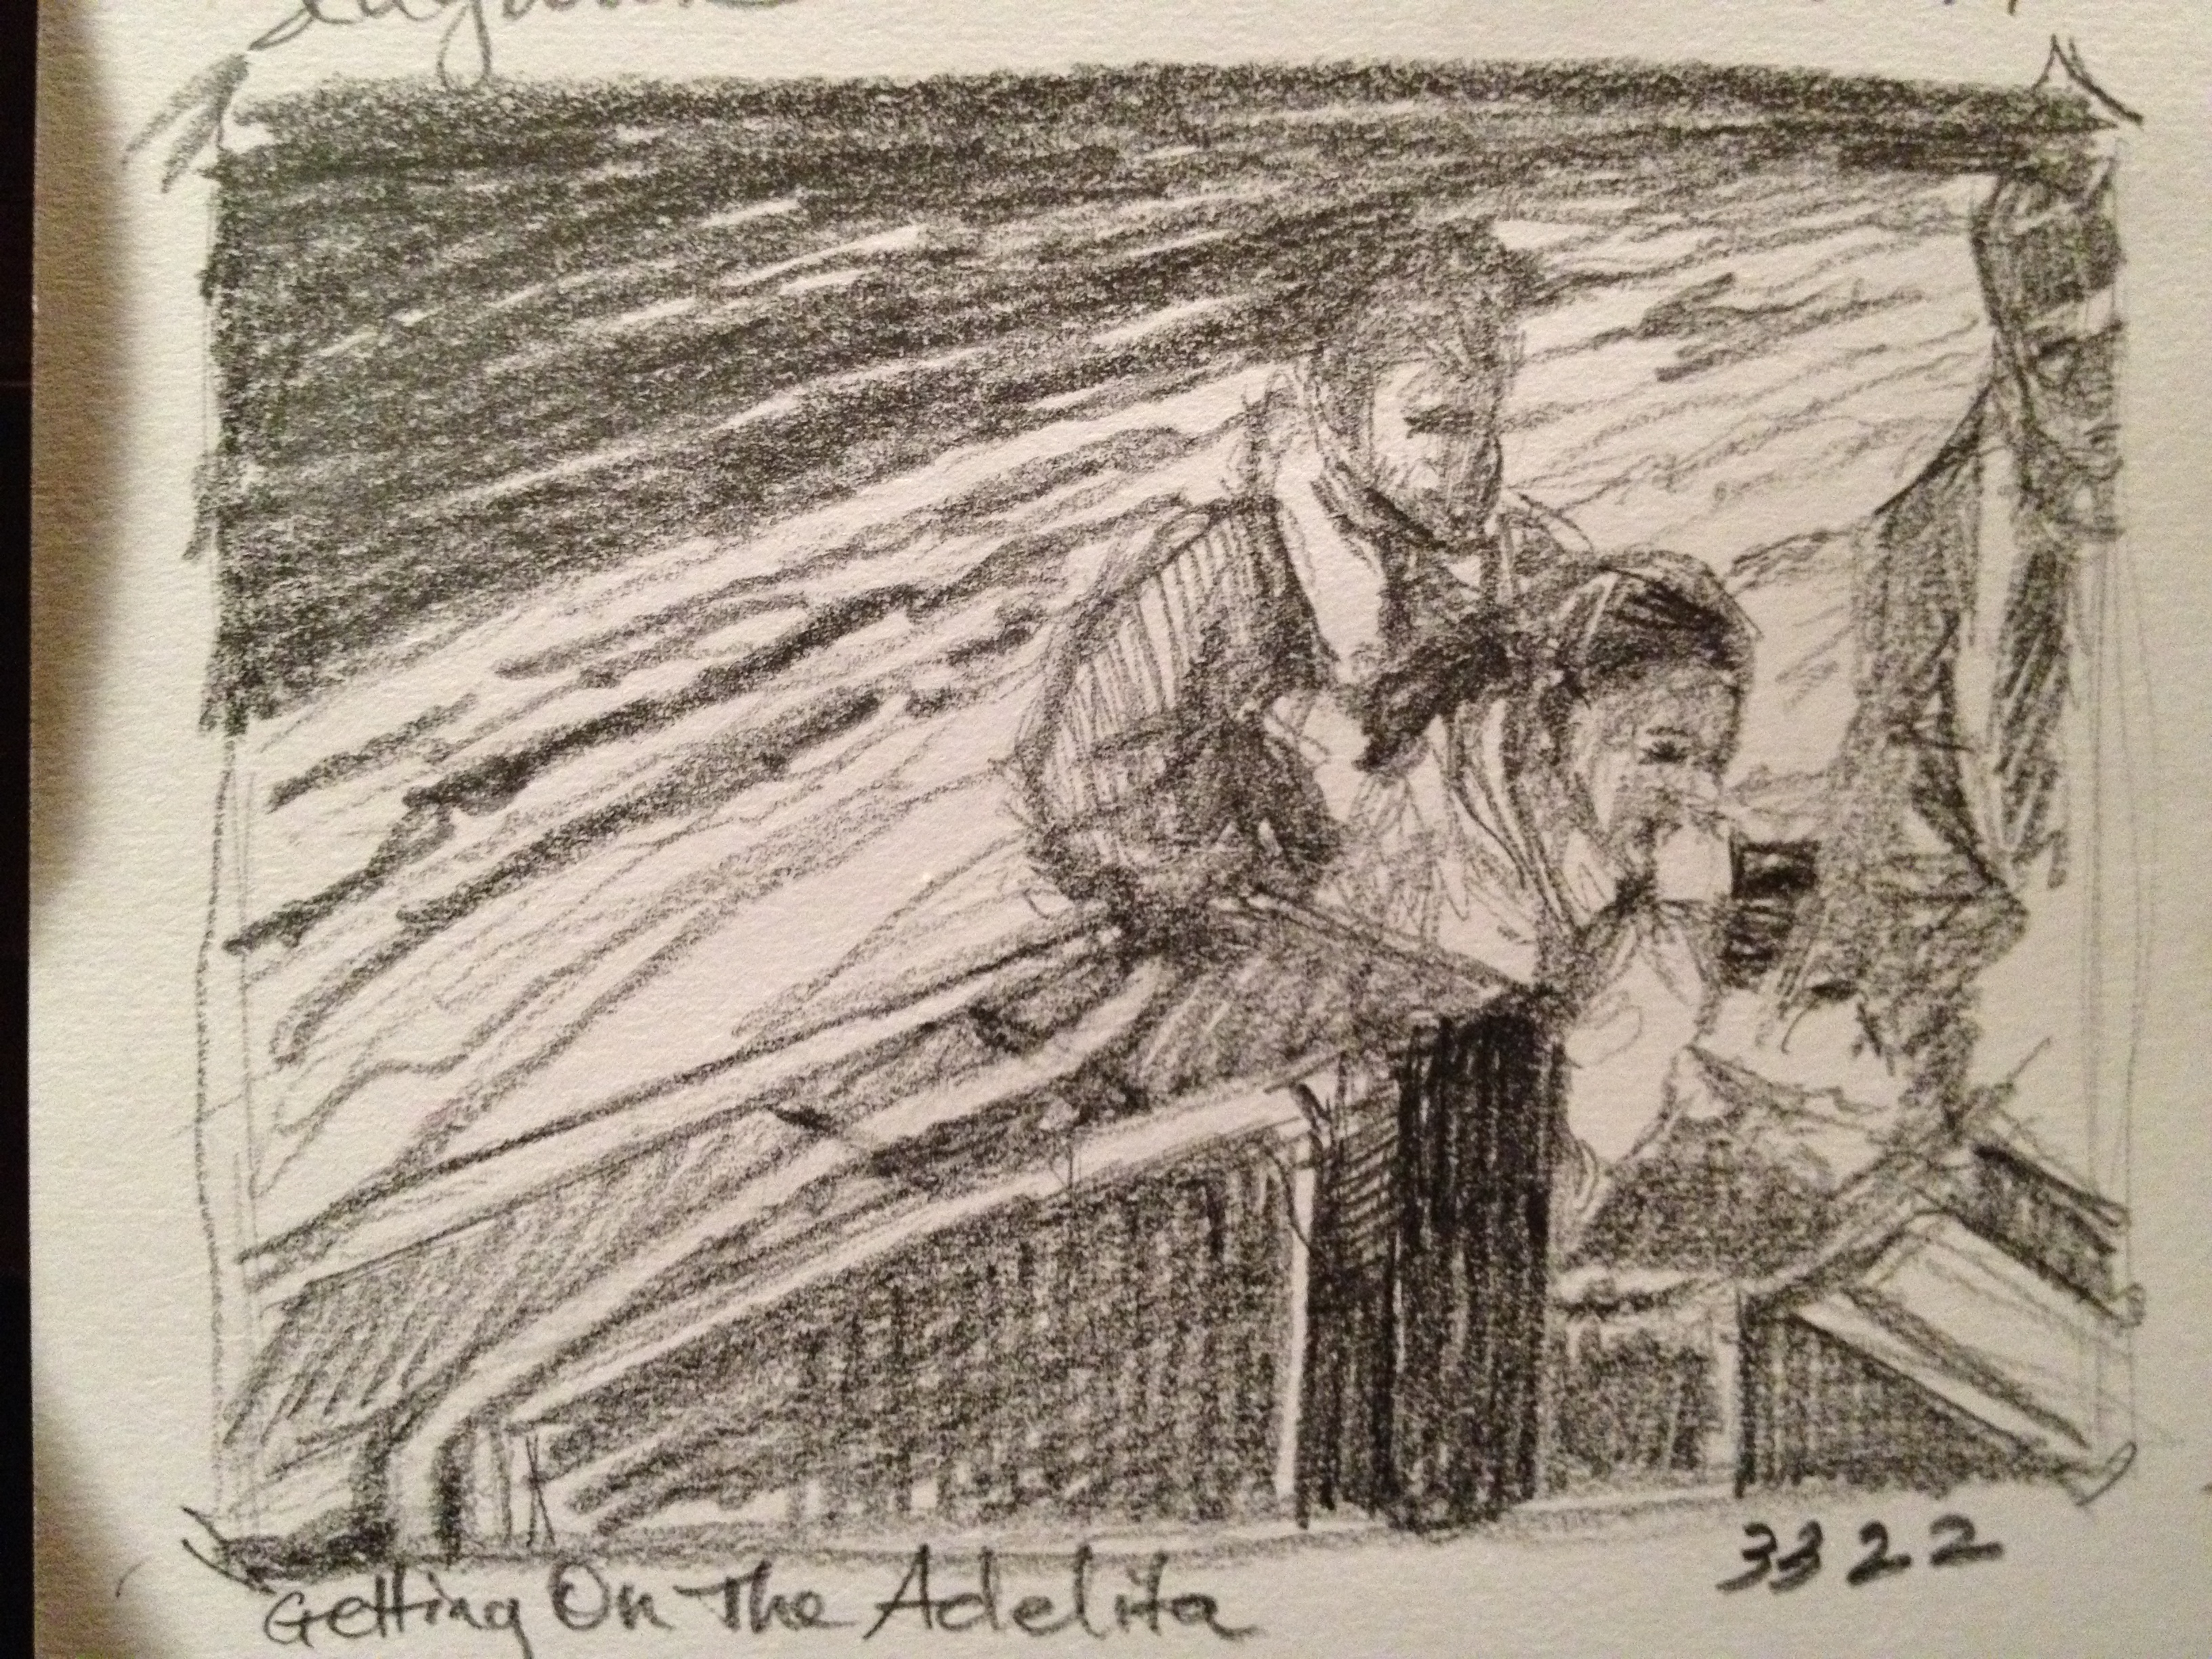 Getting On The Adelita at Sedgwick Bay - Thumbnail sketch ©2012 Janice Tanton.